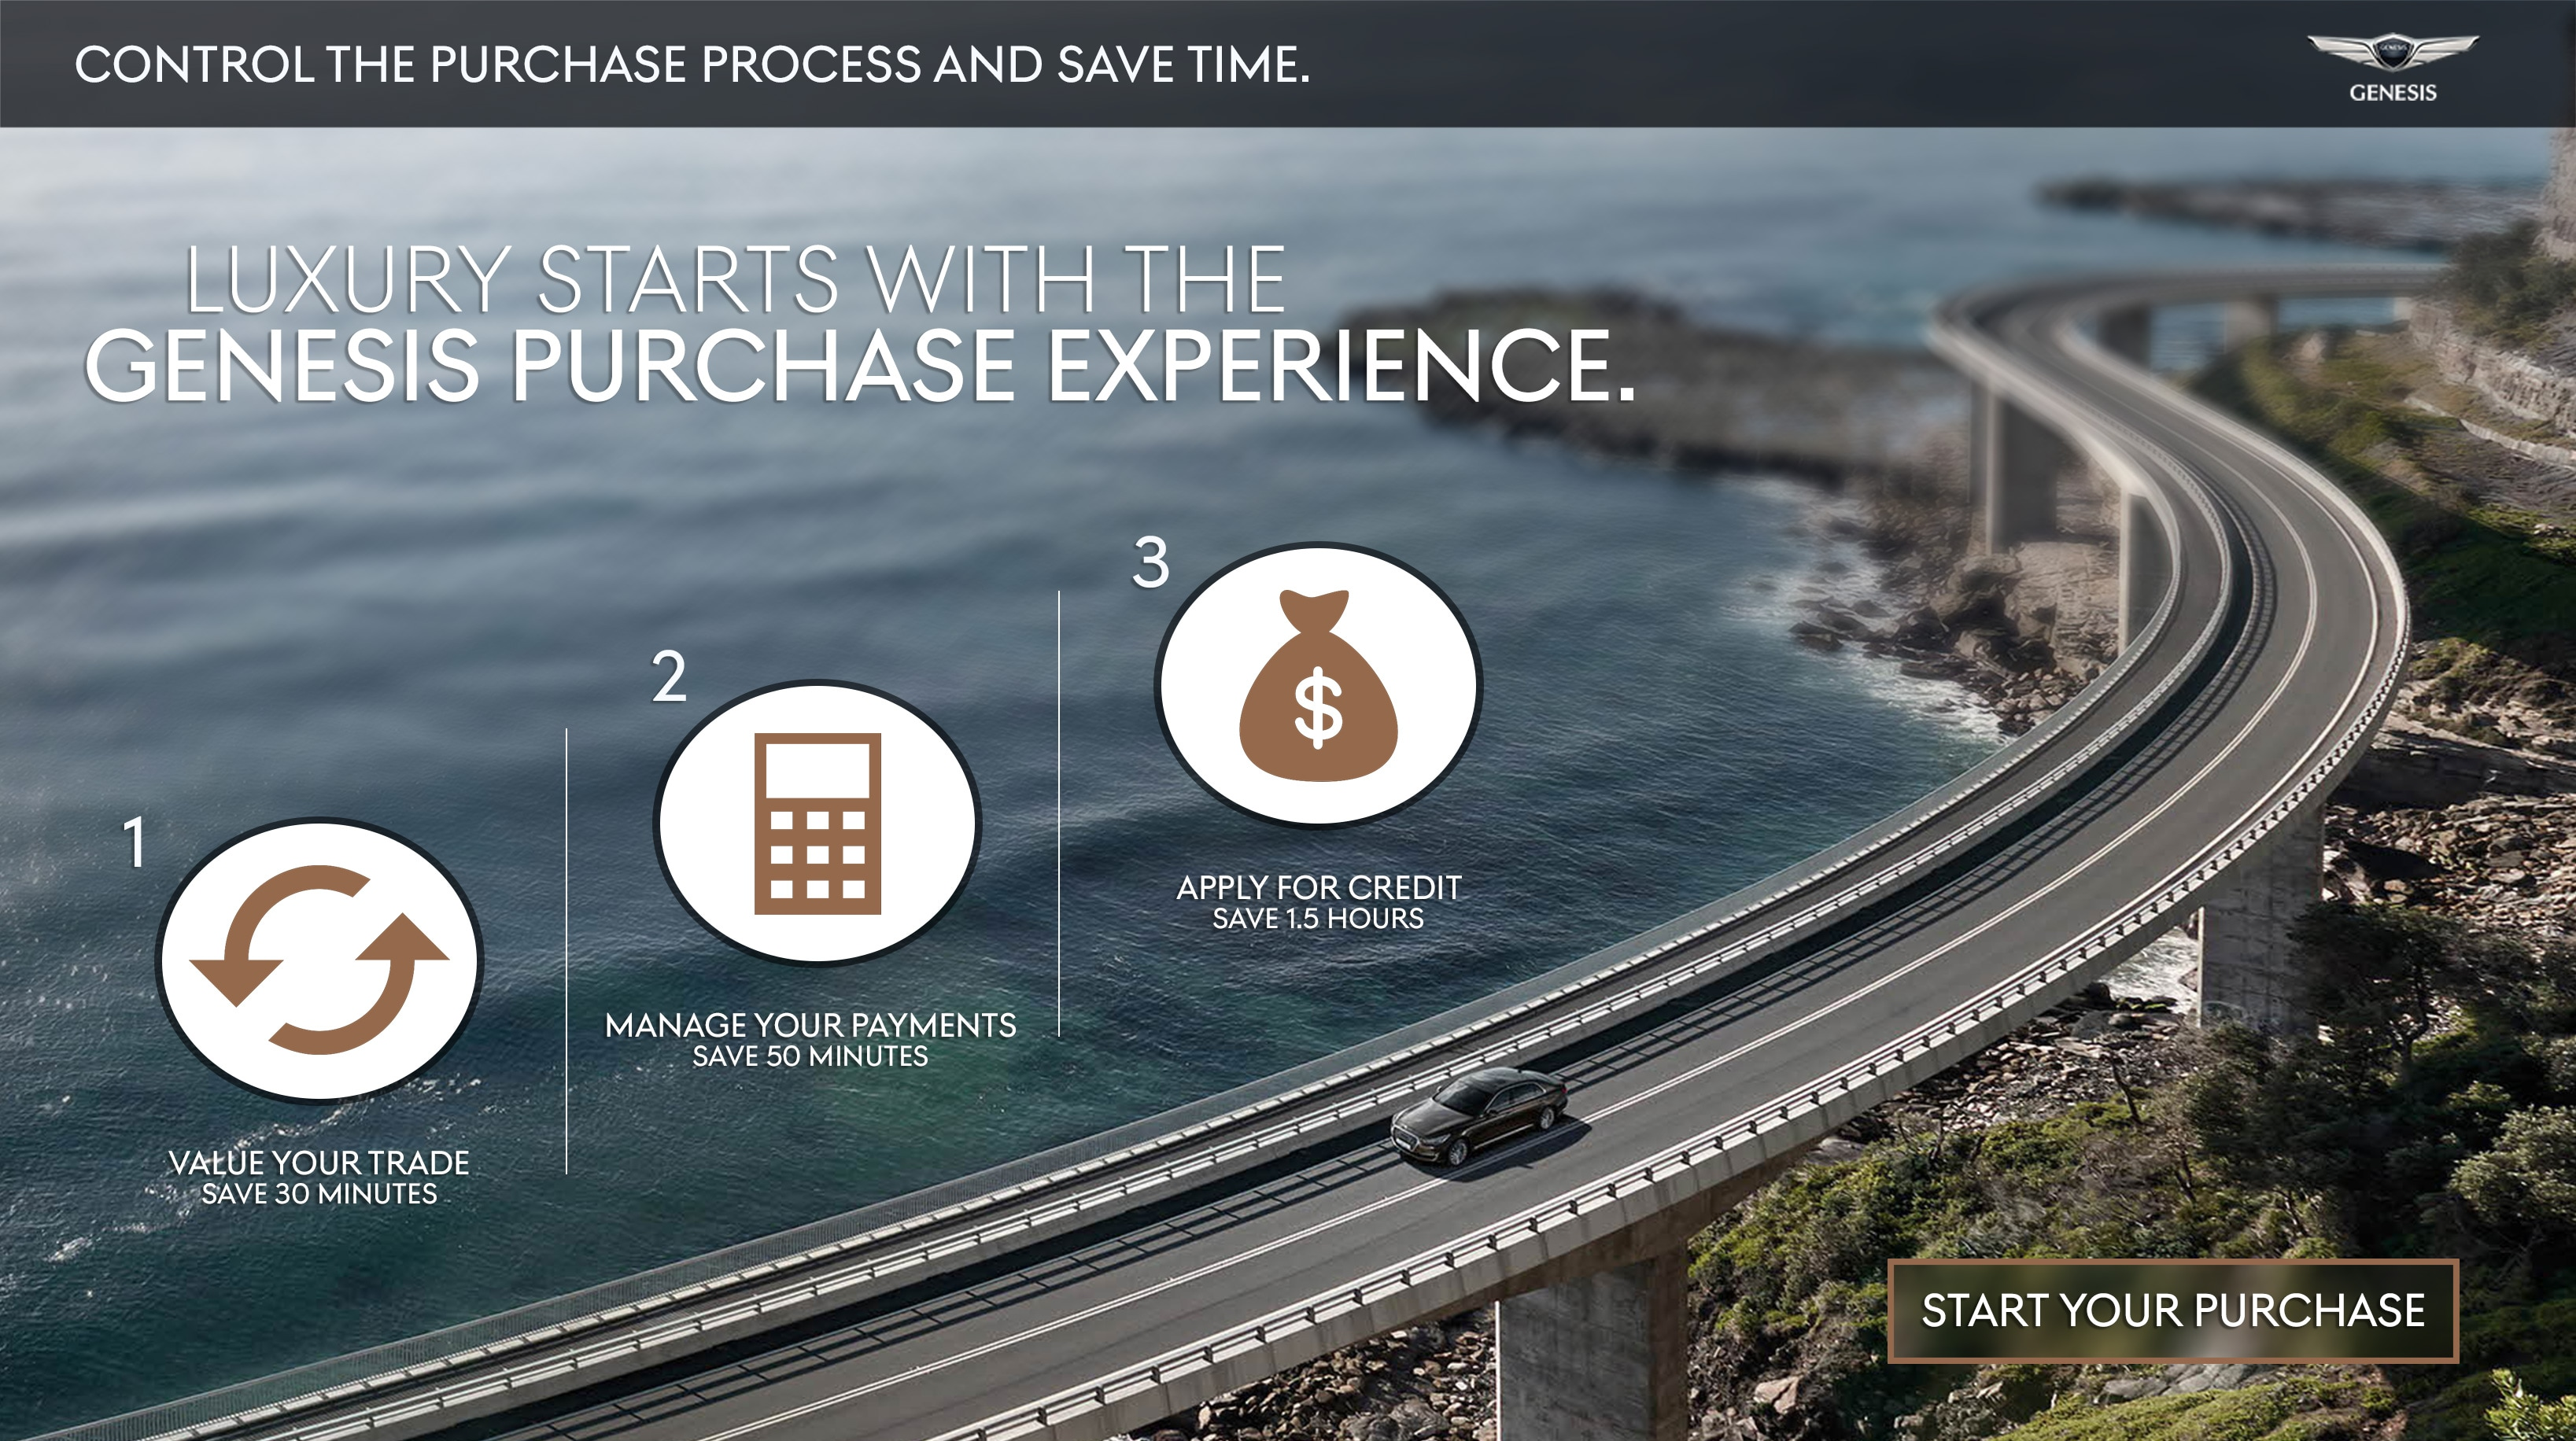 Genesis control the purchase process and save time